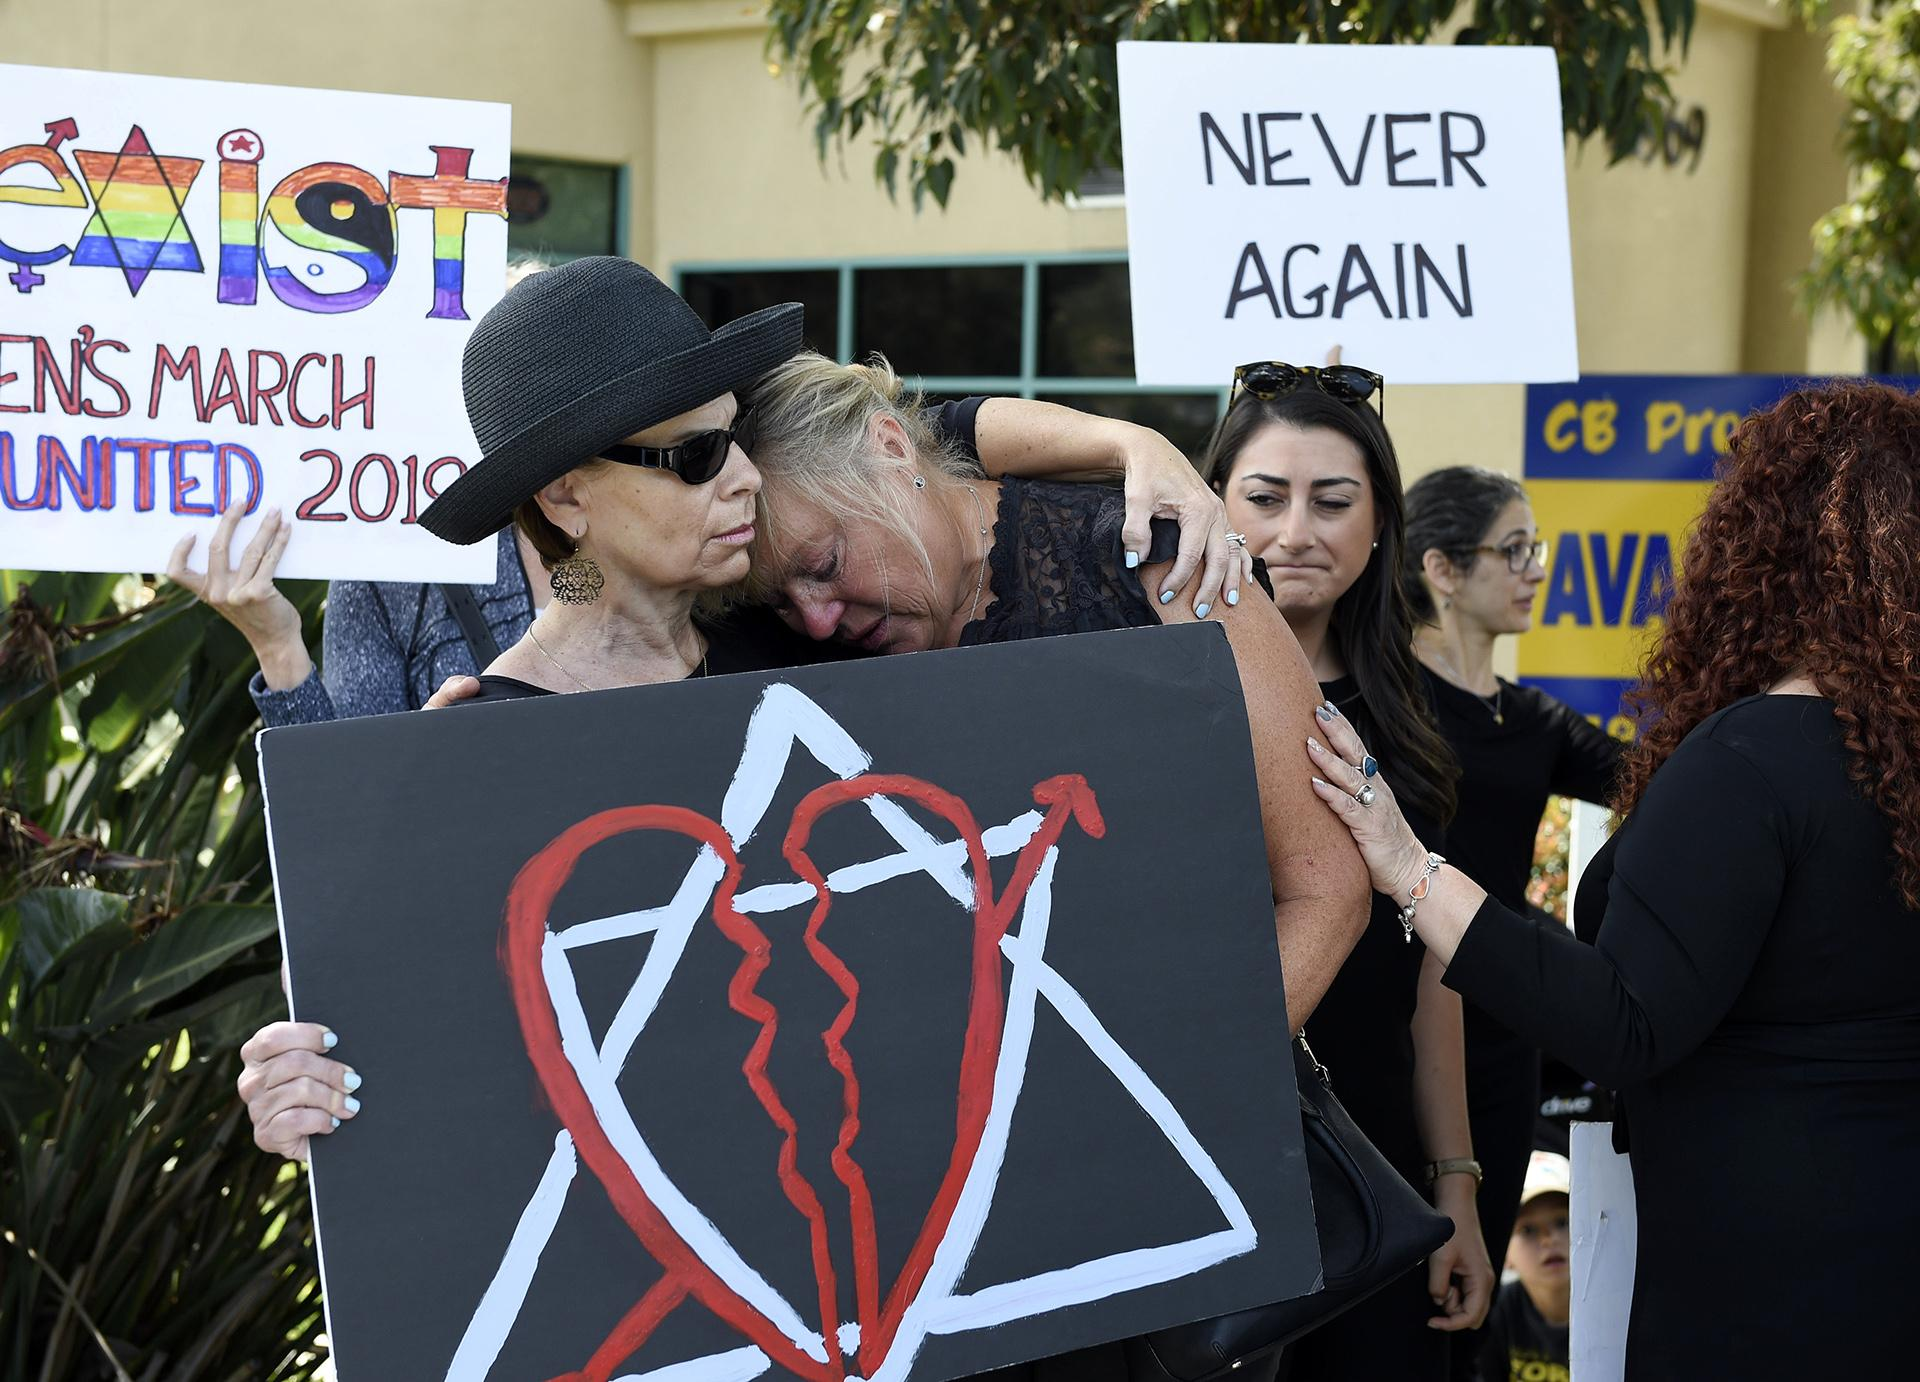 Leslie Gollub, left, and Gretchen Gordon hug at a vigil held to support the victims of the Chabad of Poway synagogue shooting, Sunday, April 28, 2019, in Poway, California. (AP Photo / Denis Poroy)